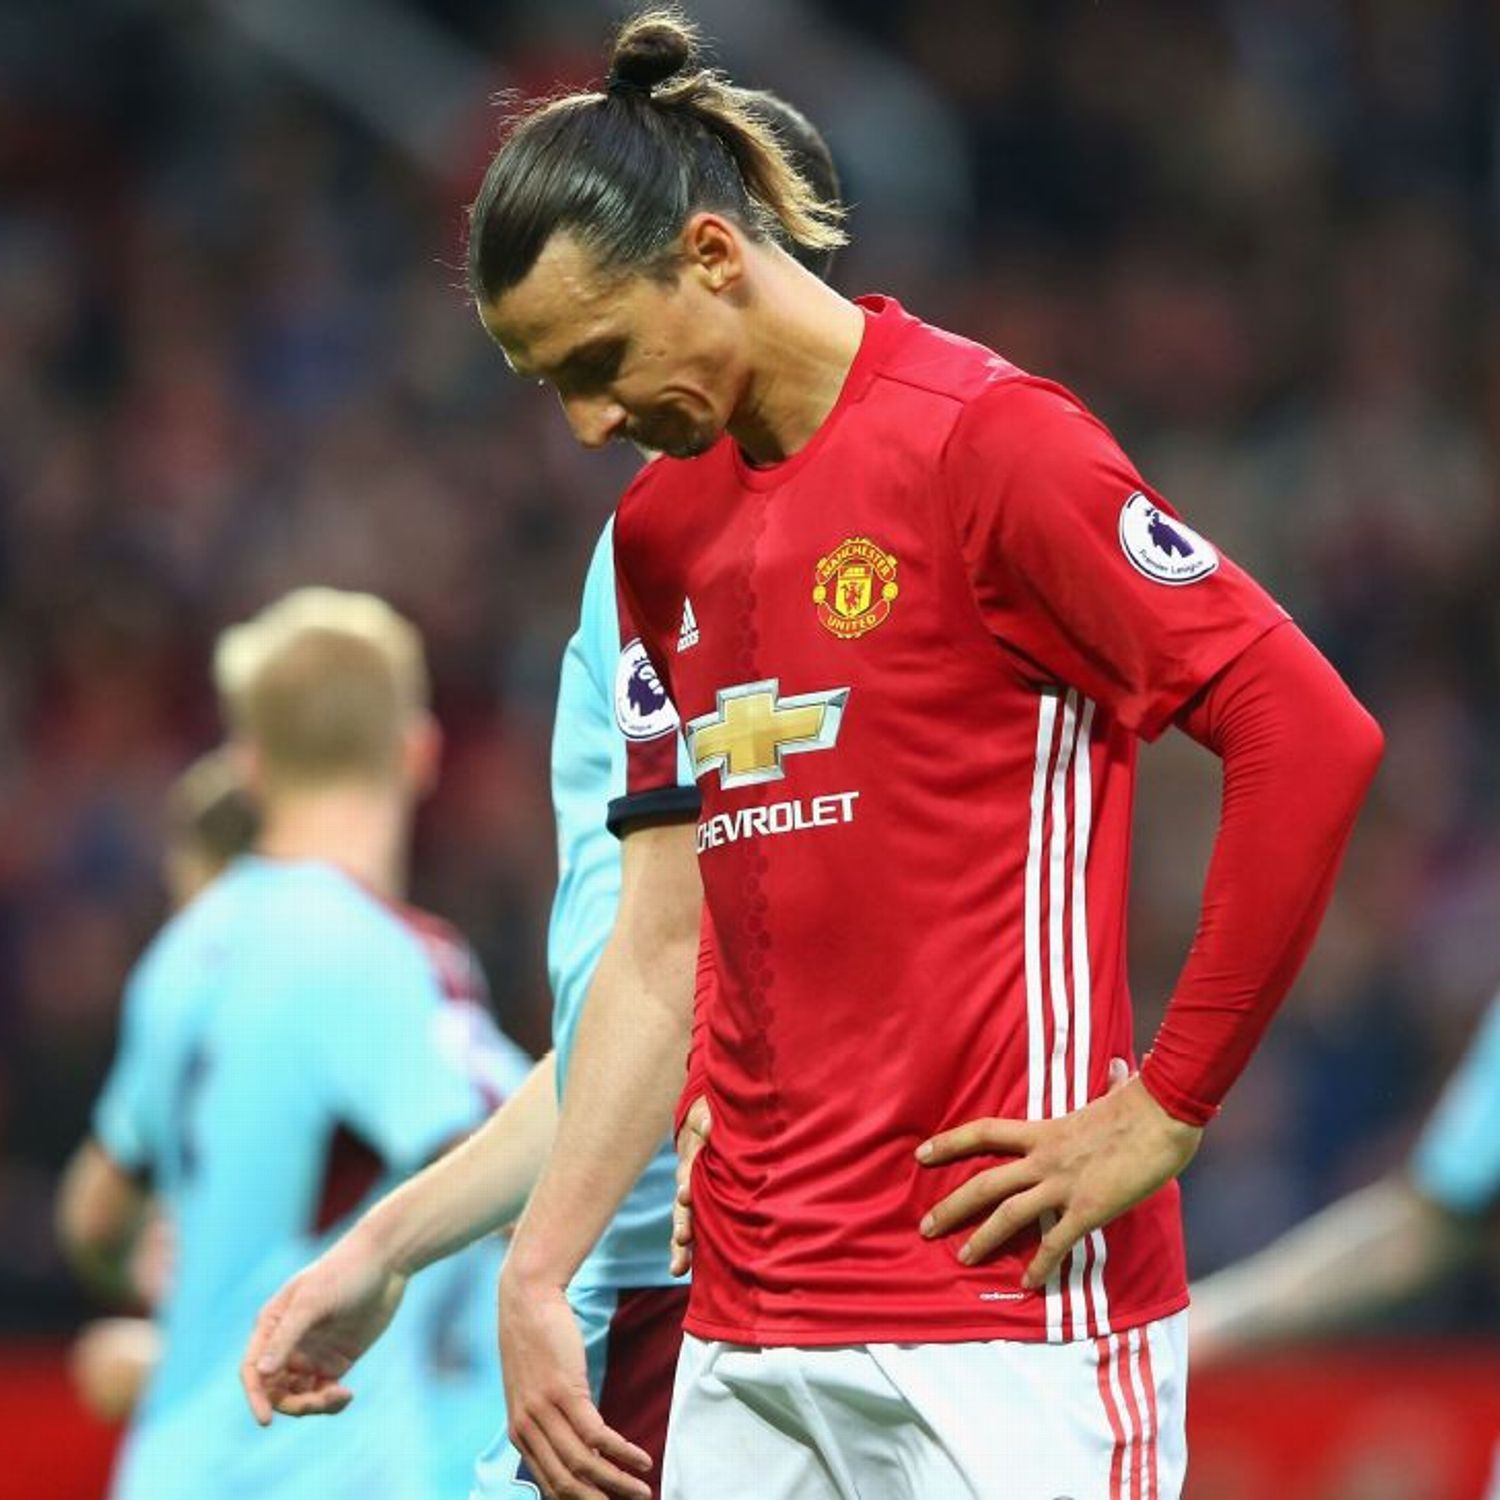 Zlatan Ibrahimovic's scoring drought at heart of